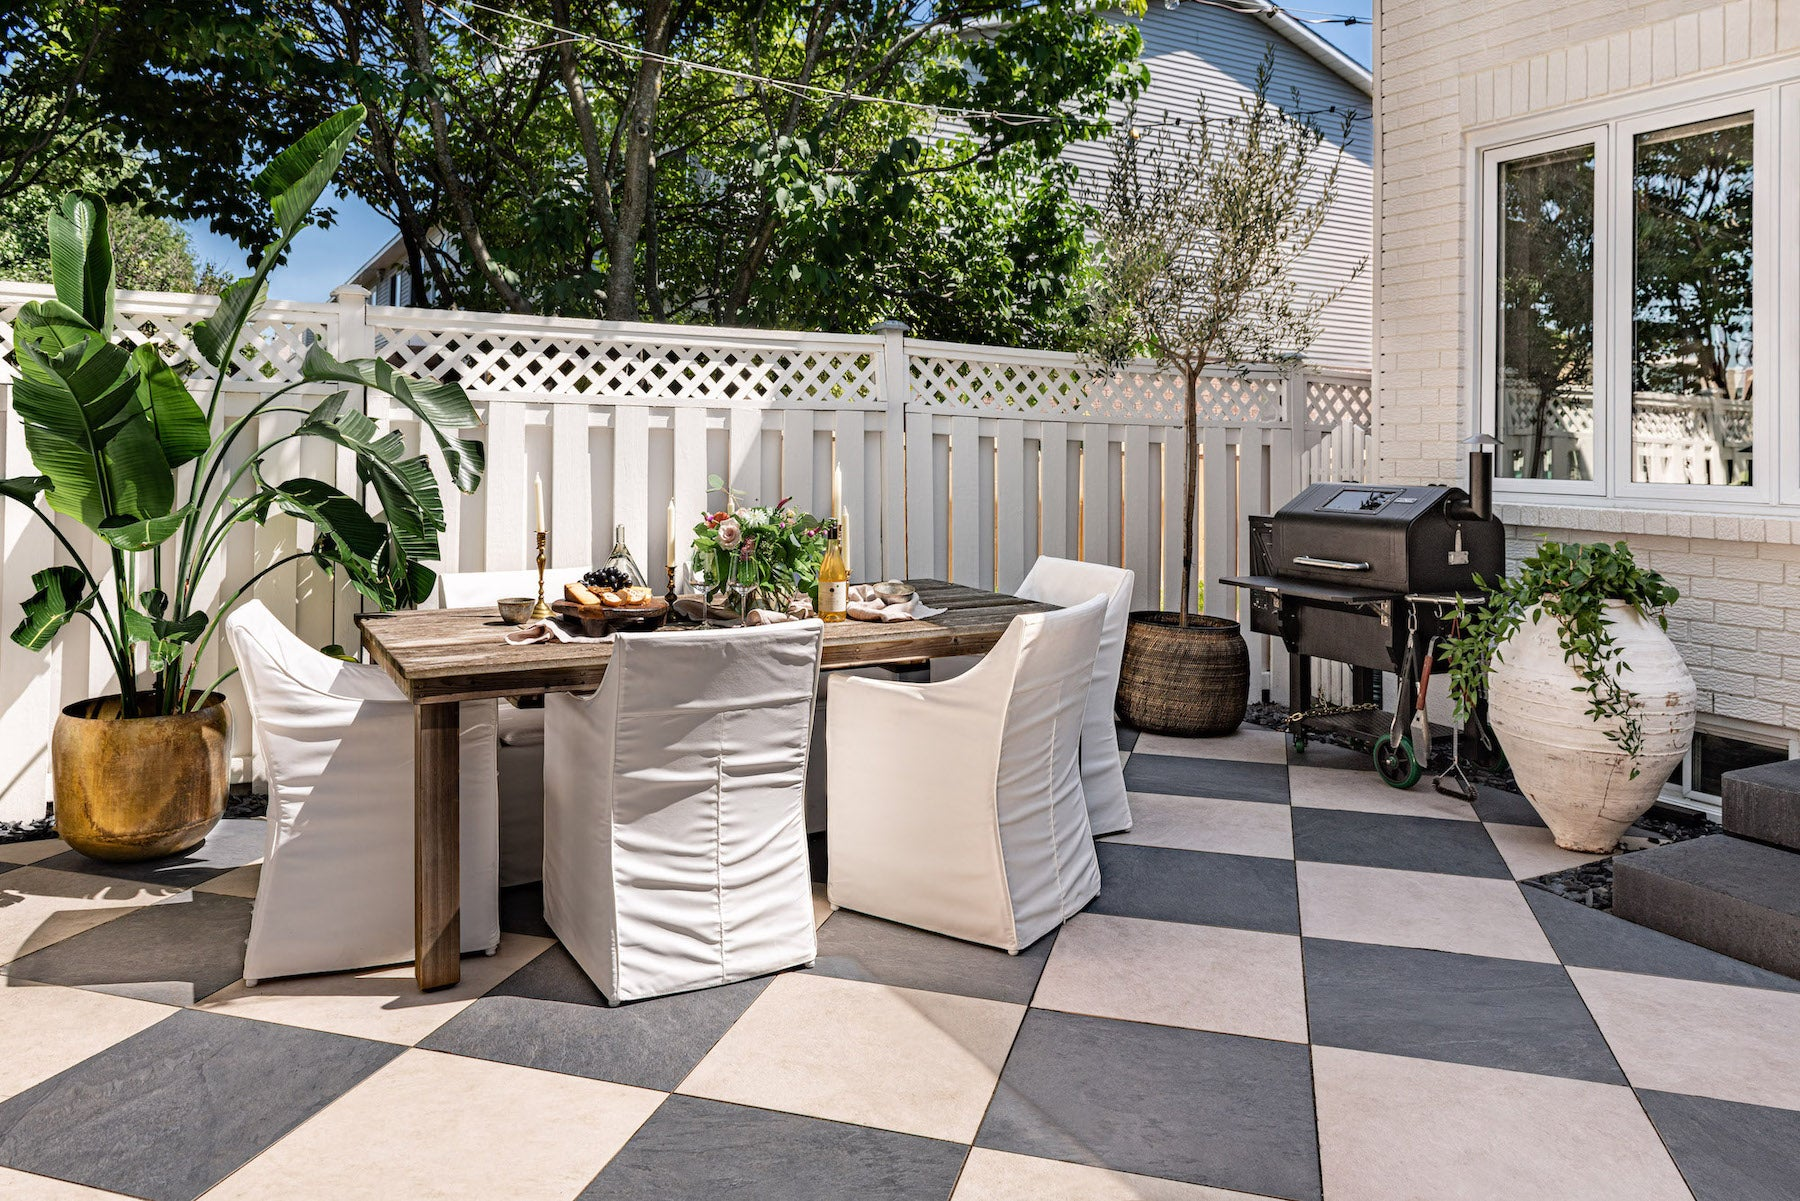 Backyard oasis, dining space and Green Mountain pellet grill.